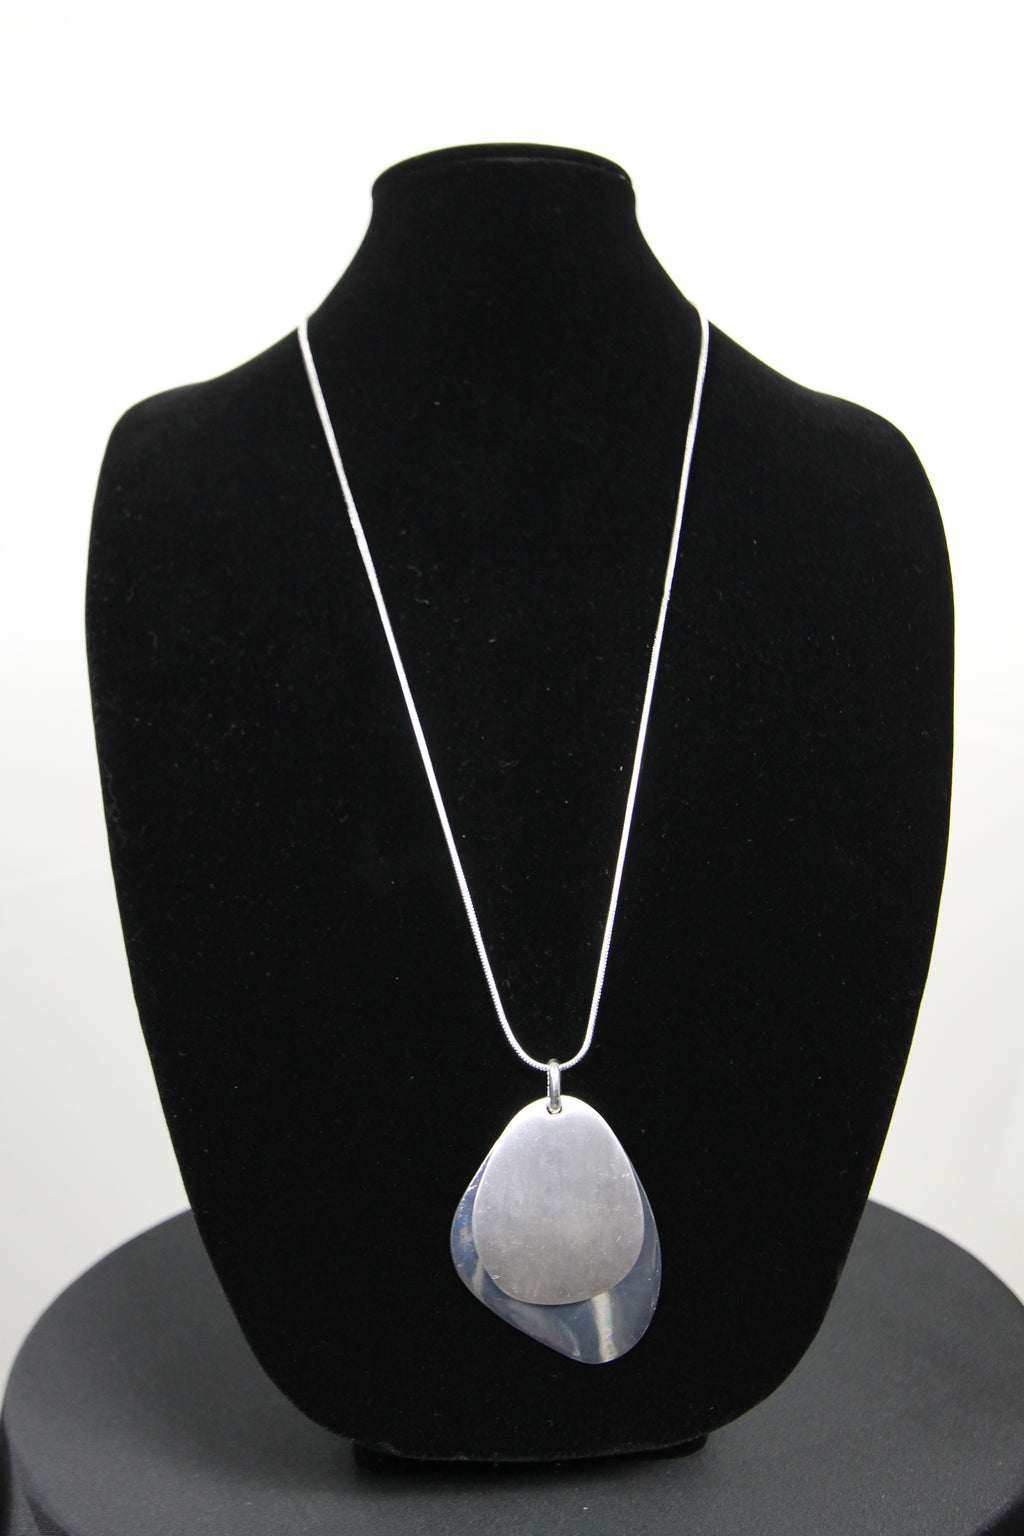 Necklace Brushed and Shiny Silver Pendent with Silver Snake chain Necklace